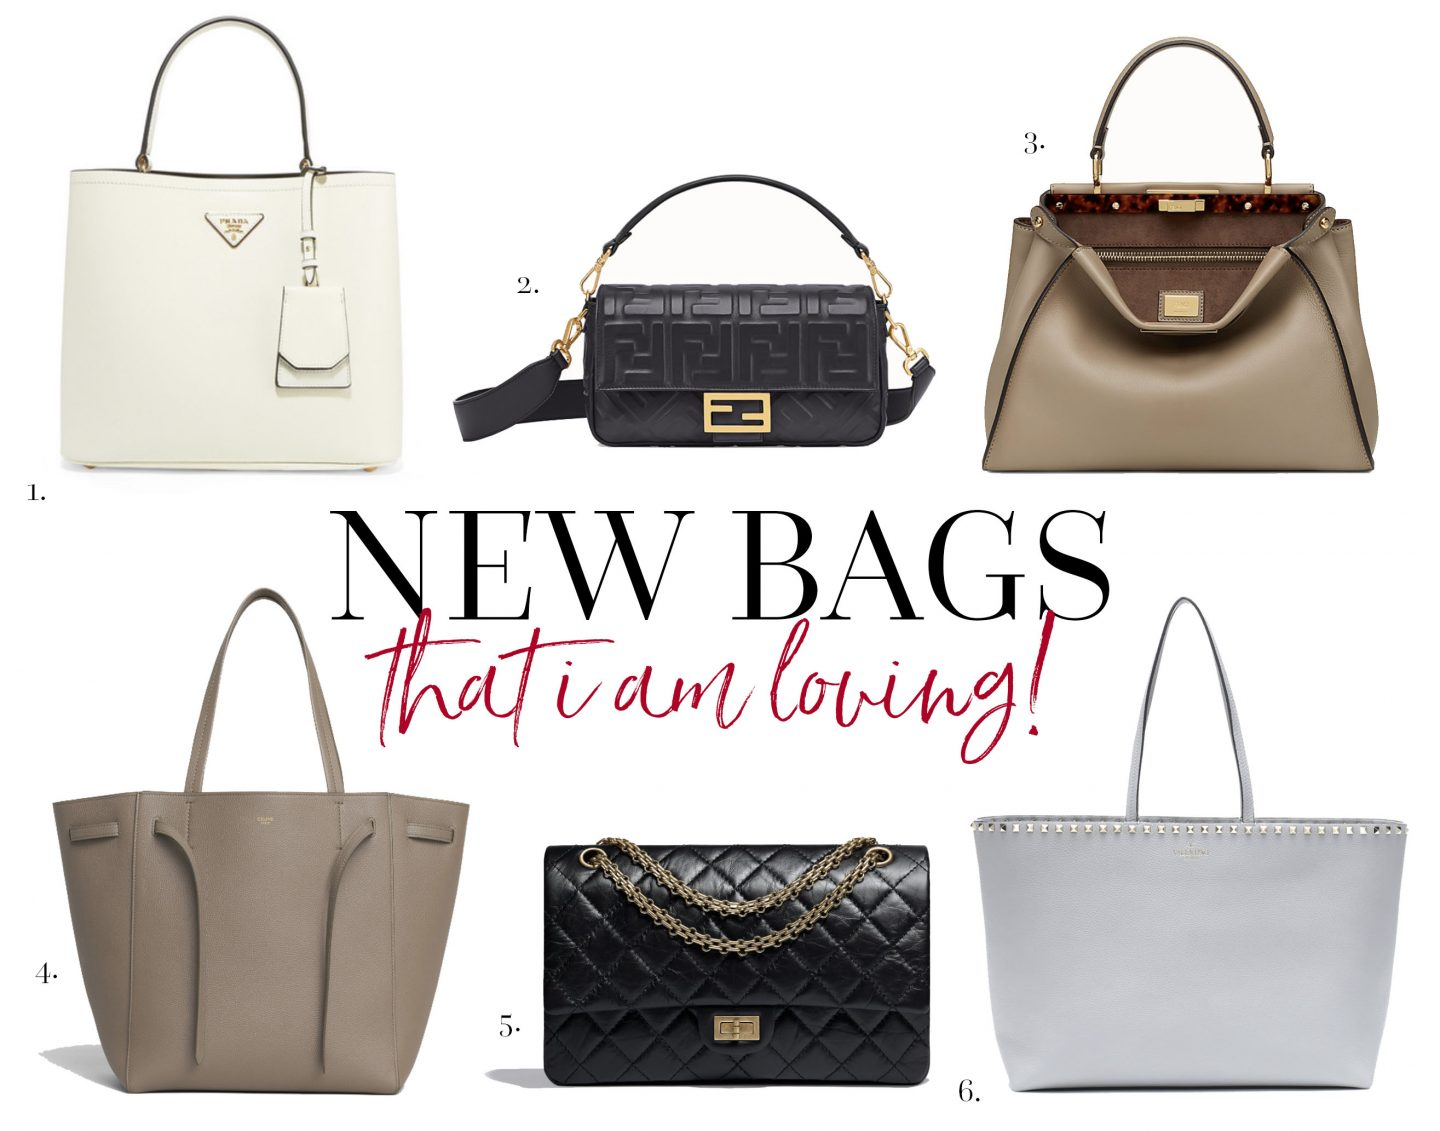 5c39b1948 The new collections are now arriving in store and there are SO many cute  items! I wasn't feeling particularly inspired by any of the new bag  releases ...